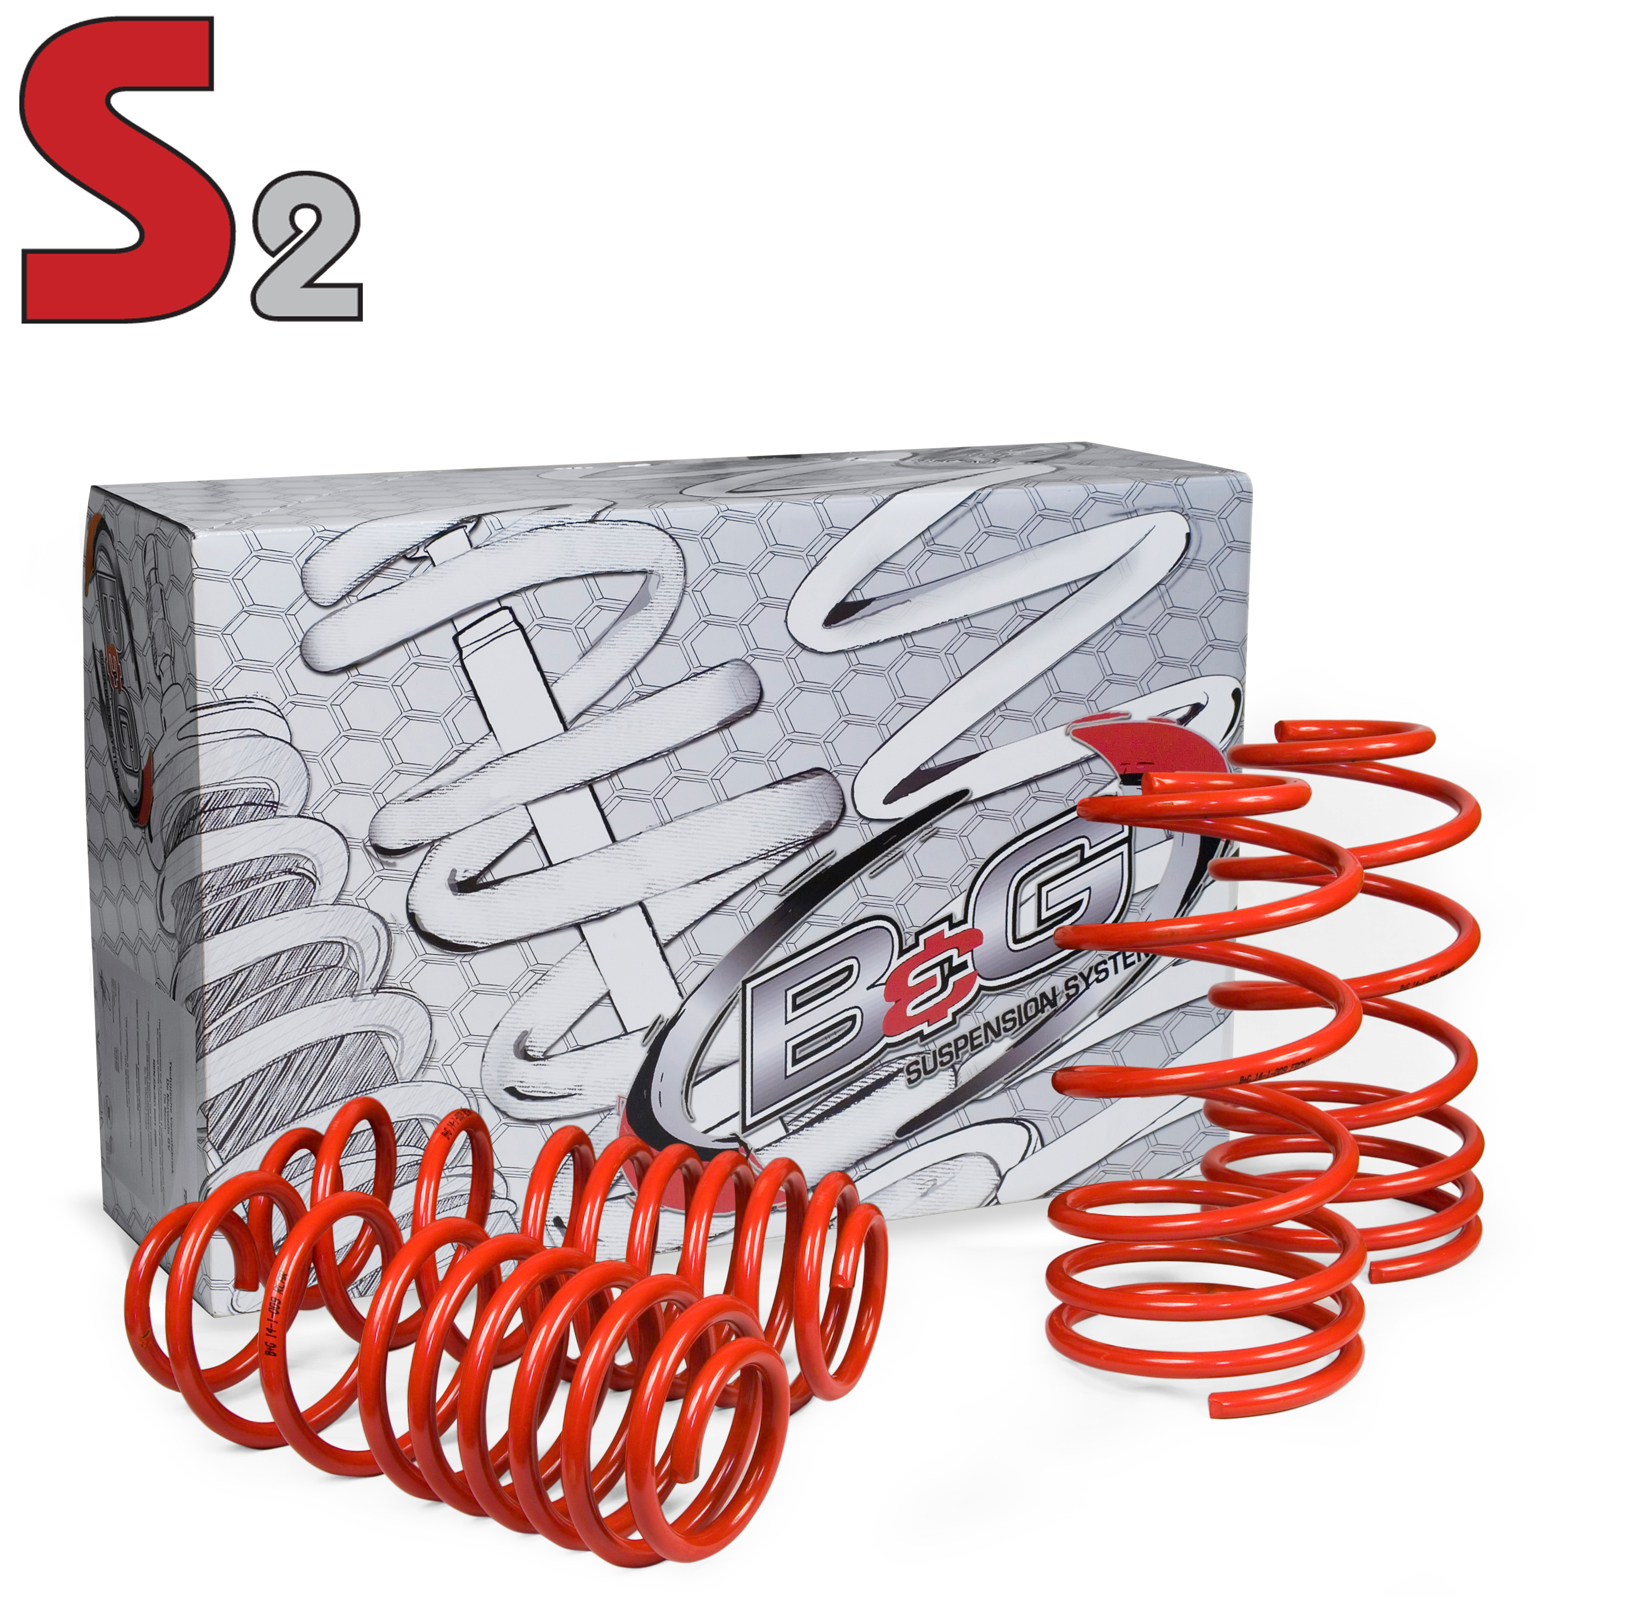 08.1.034 B&G Springs Lowering Kit 1.25 Inch Front Drop/ 1.25 Inch